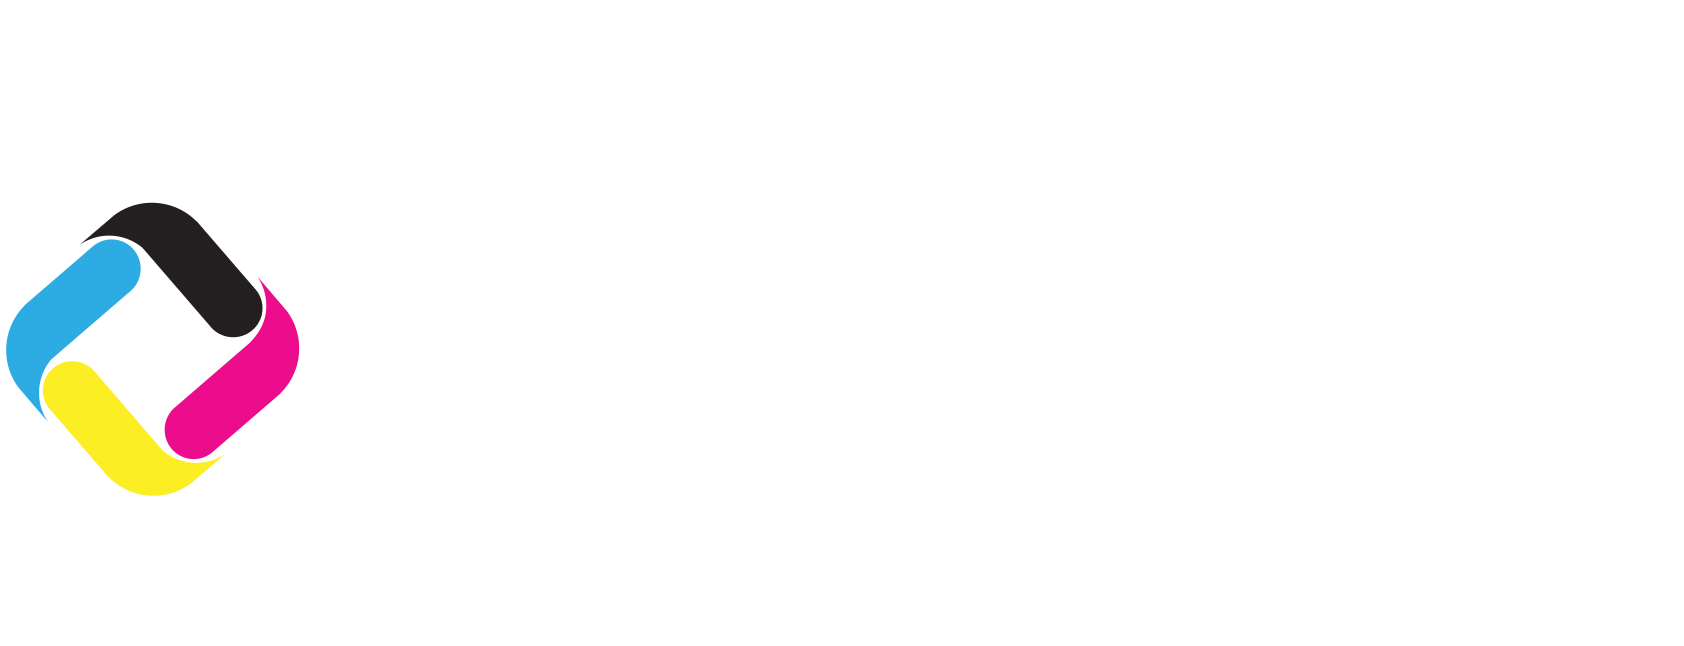 Dollco Logo